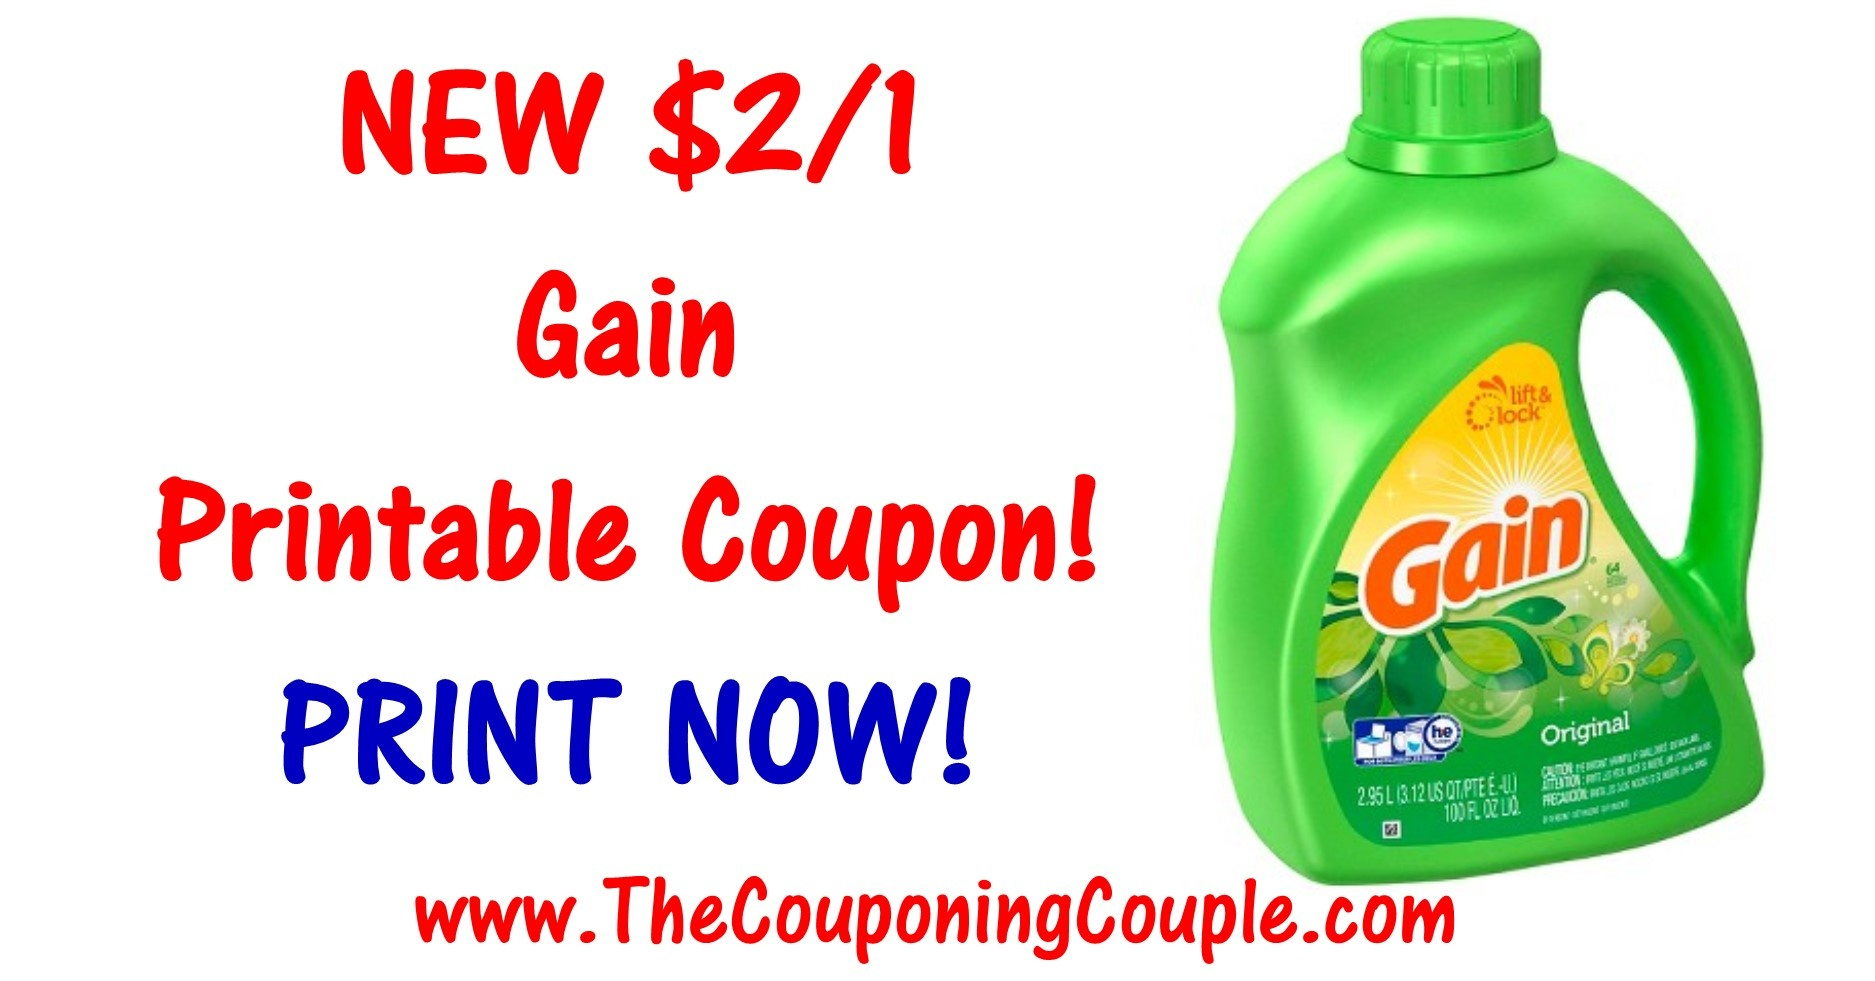 New Gain Printable Coupon ~ Print $2/1 Coupon Now! - Free Printable Gain Laundry Detergent Coupons